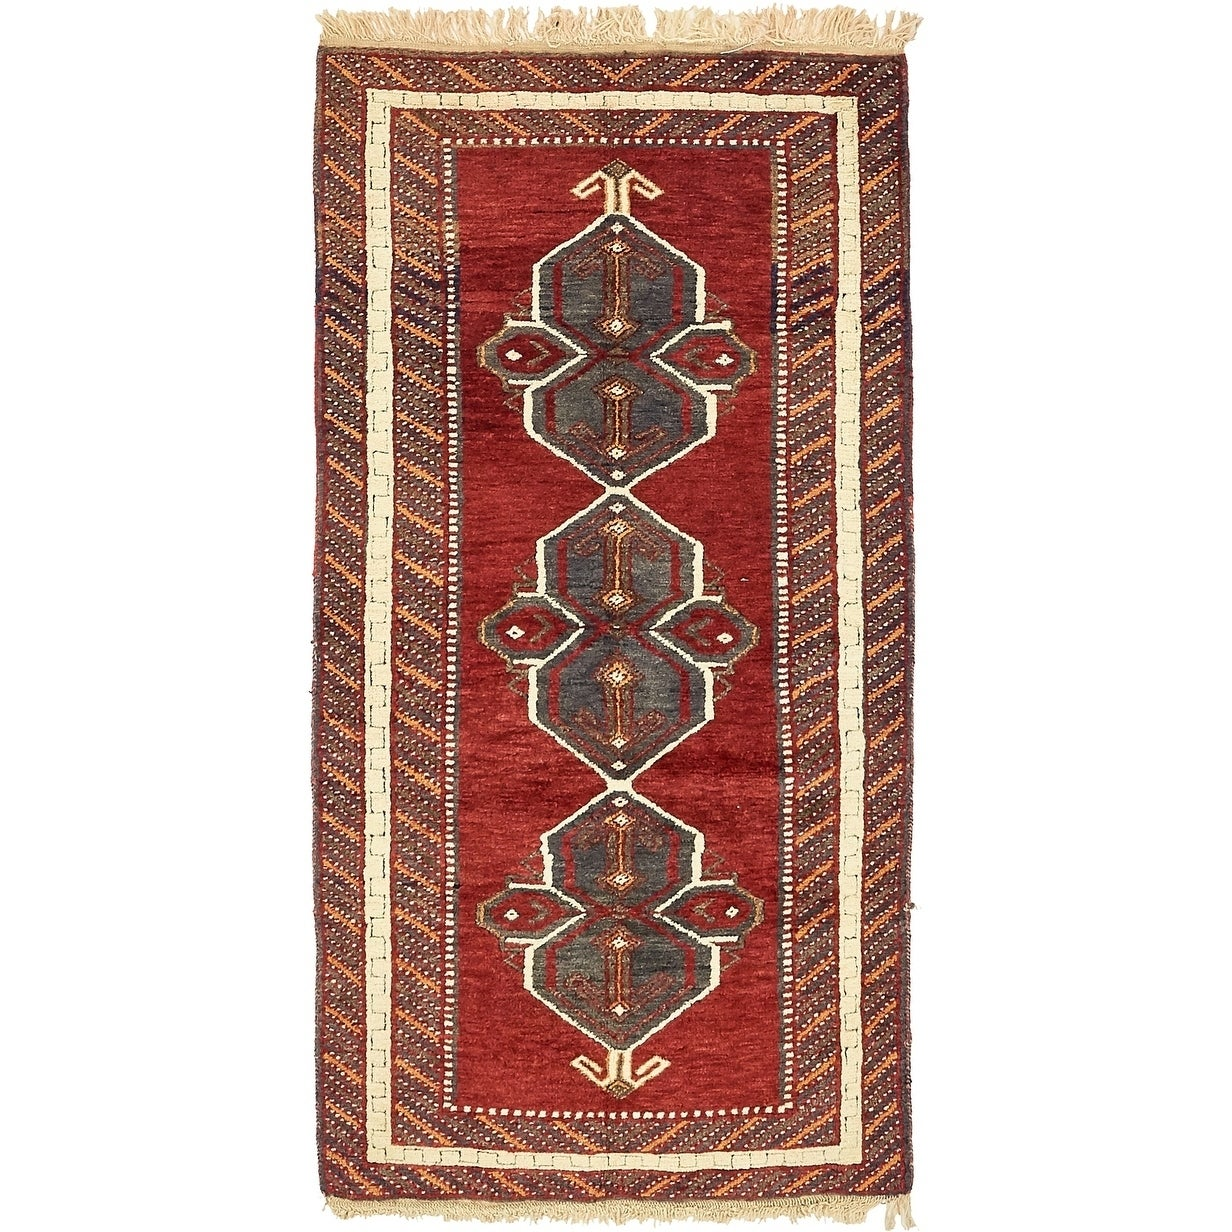 Hand Knotted Kars Wool Area Rug - 3' 2 x 6' 4 (Red - 3' 2 x 6' 4)